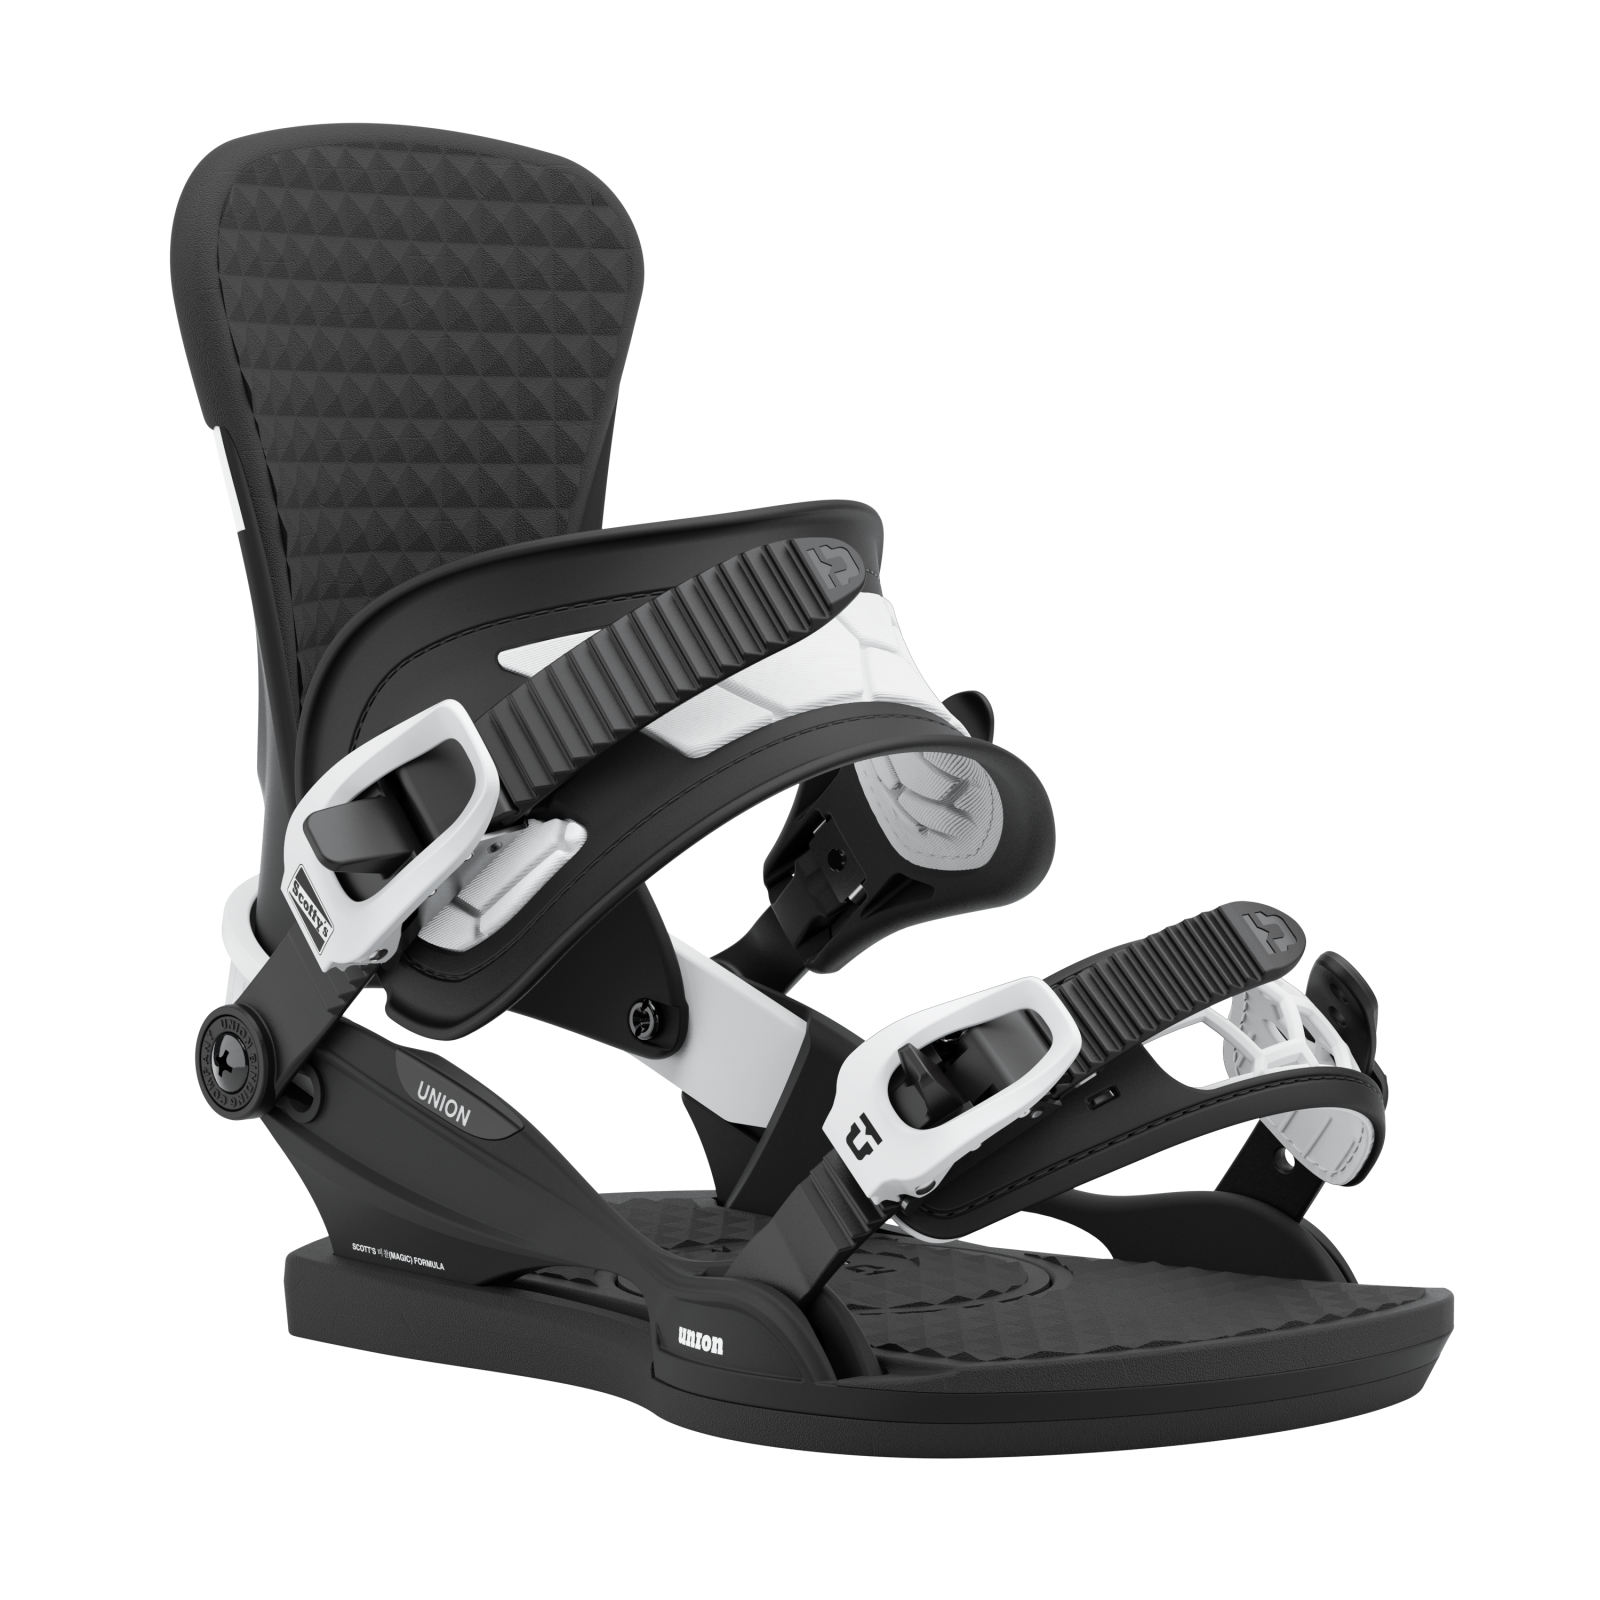 Union Contact Pro Snowboard Binding (Multiple Color Options)